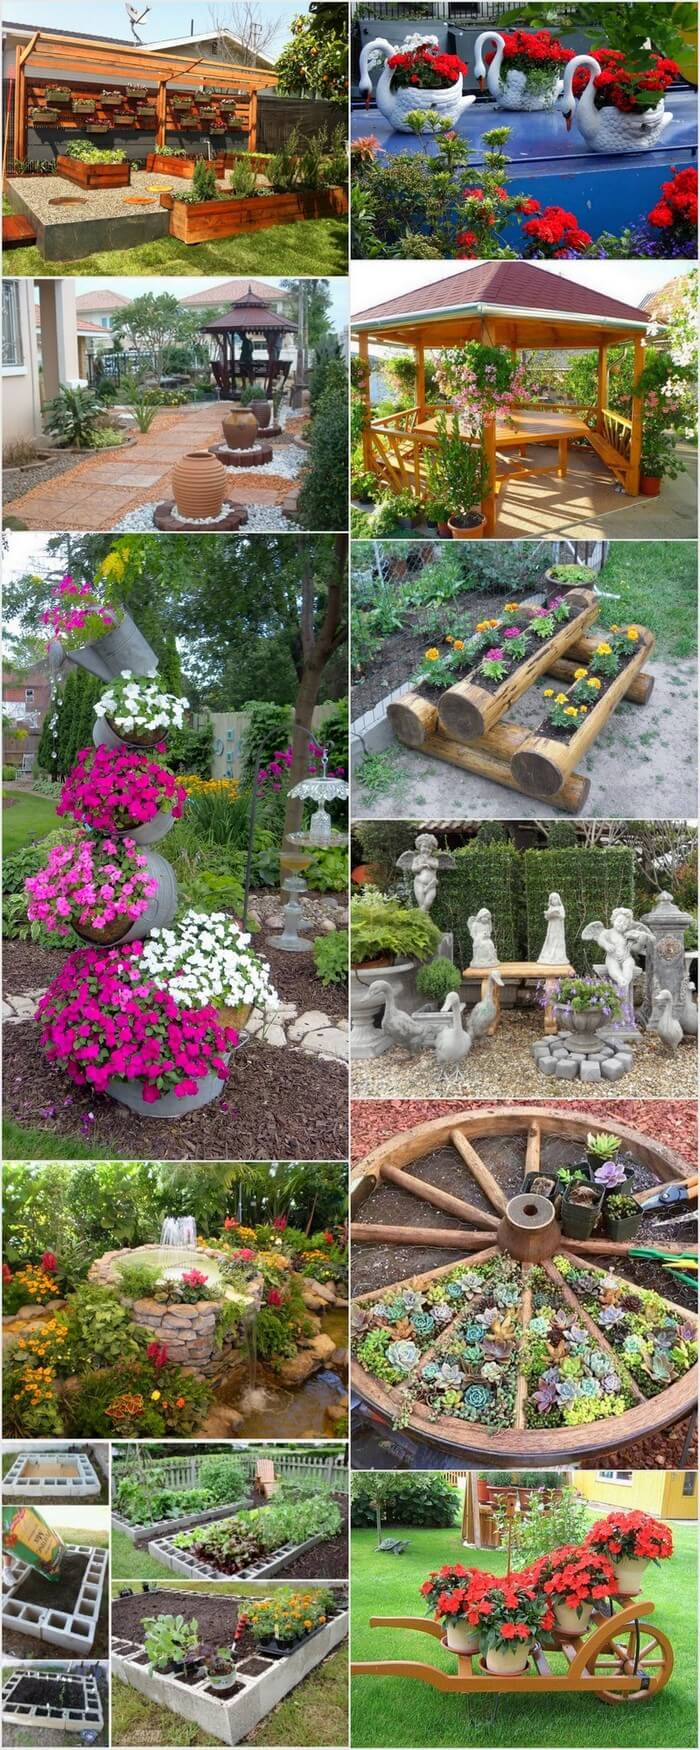 Pretty wonderful diy garden decor ideas recycled things for Garden decoration ideas pictures